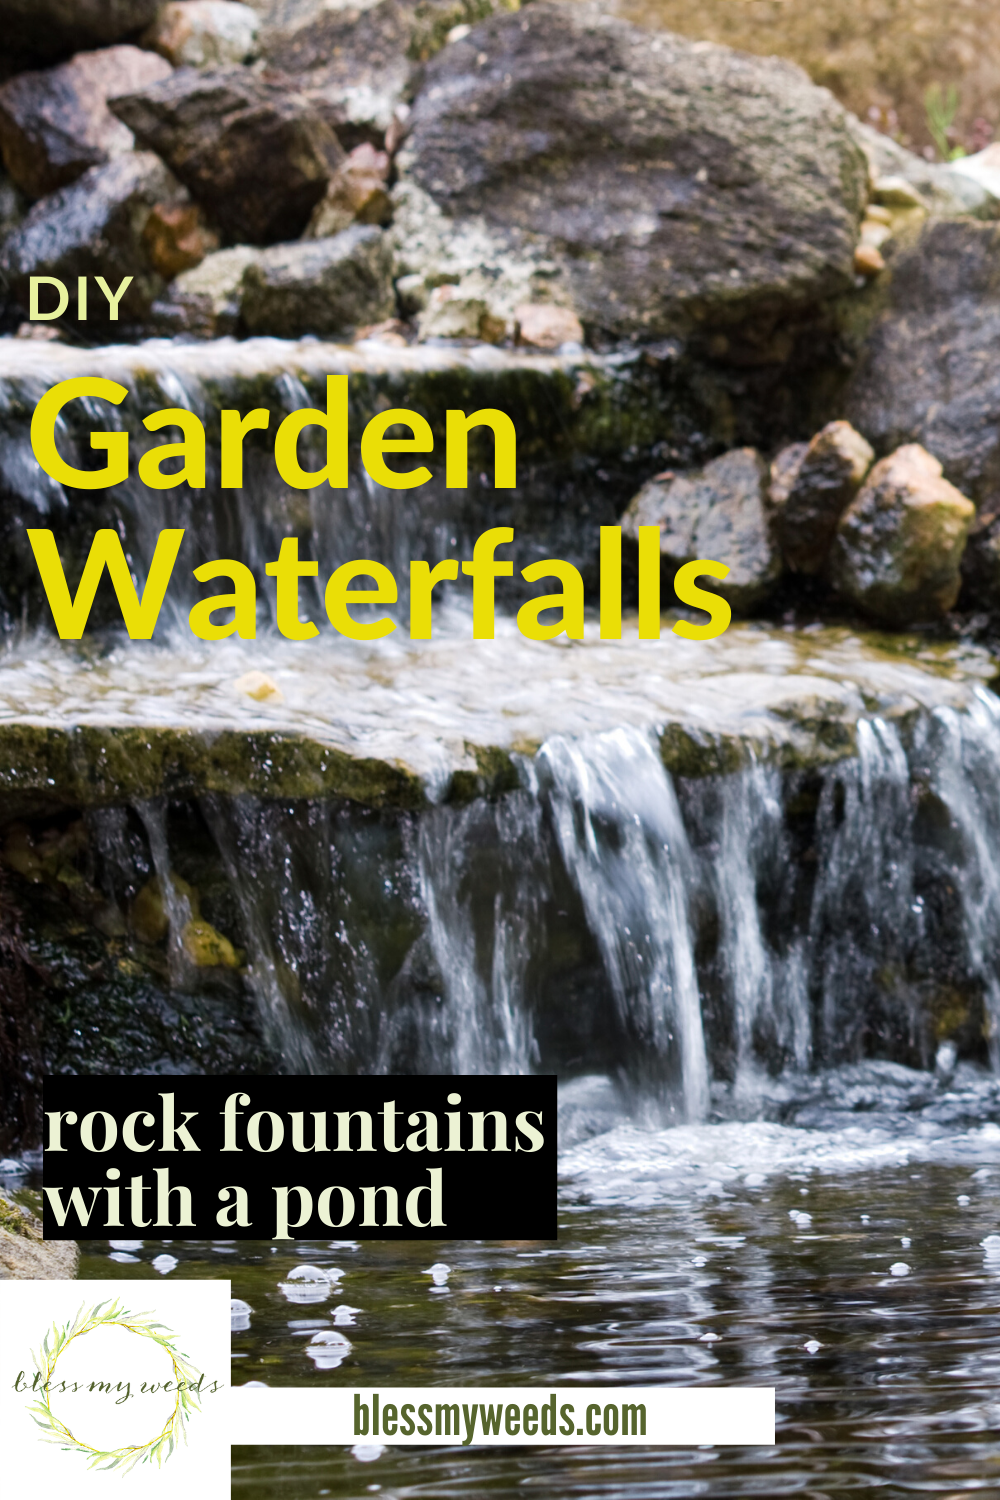 A garden waterfall always seems to be part of the landscape of luxury homes. But, you can have one, too. Even if your home is modest. Let Bless My Weeds help you with ideas, DIY projects, and ways you can save money. Imagine the soothing sounds of a waterfall in your yard. Read on to learn how you can have one this summer. #gardenwaterfall#backyardprojects #DIYgardenwaterfall